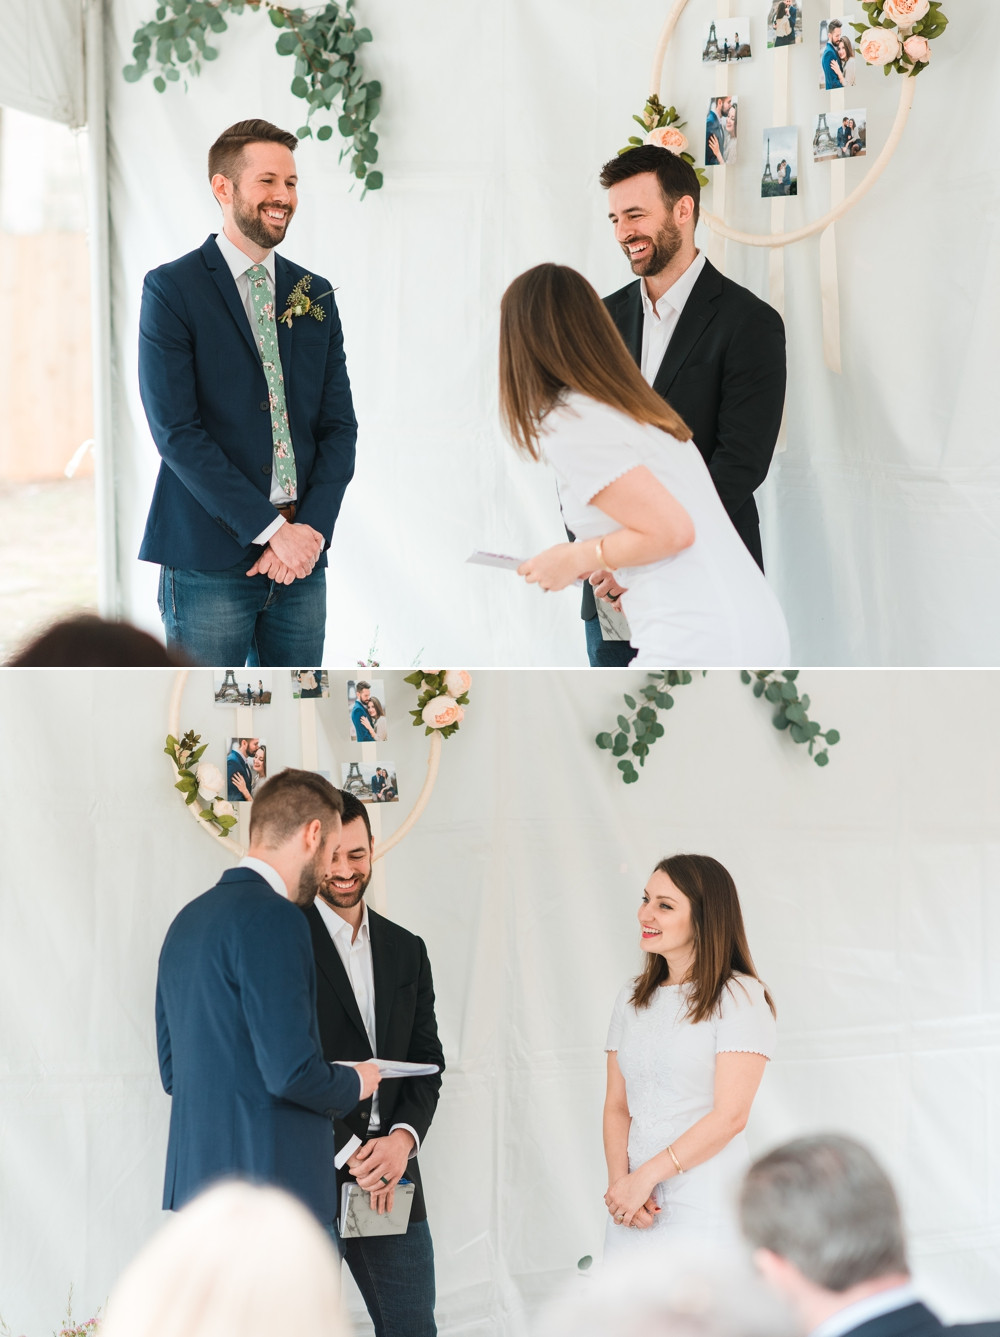 bride and groom exchanging vows and laughing while bride is wearing a white dress